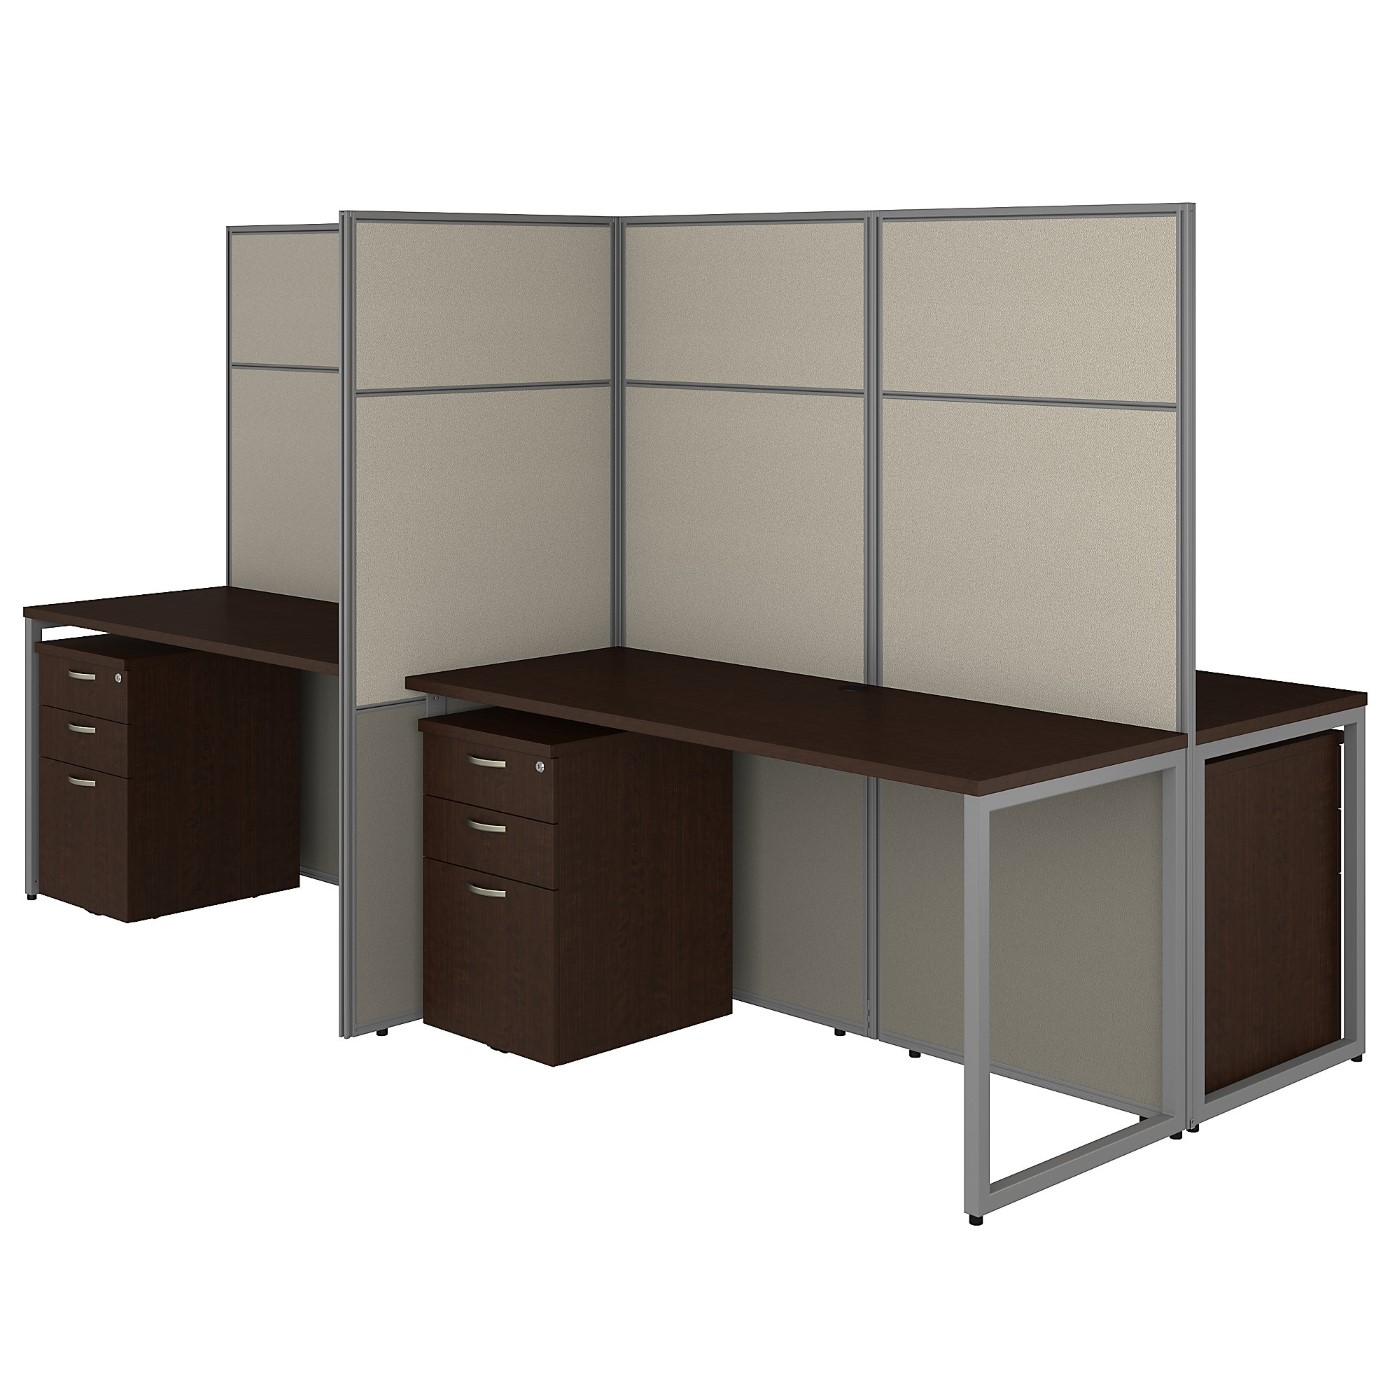 BUSH BUSINESS FURNITURE EASY OFFICE 60W 4 PERSON CUBICLE DESK WITH FILE CABINETS AND 66H PANELS. FREE SHIPPING 30H x 72L x 72W  VIDEO BELOW.